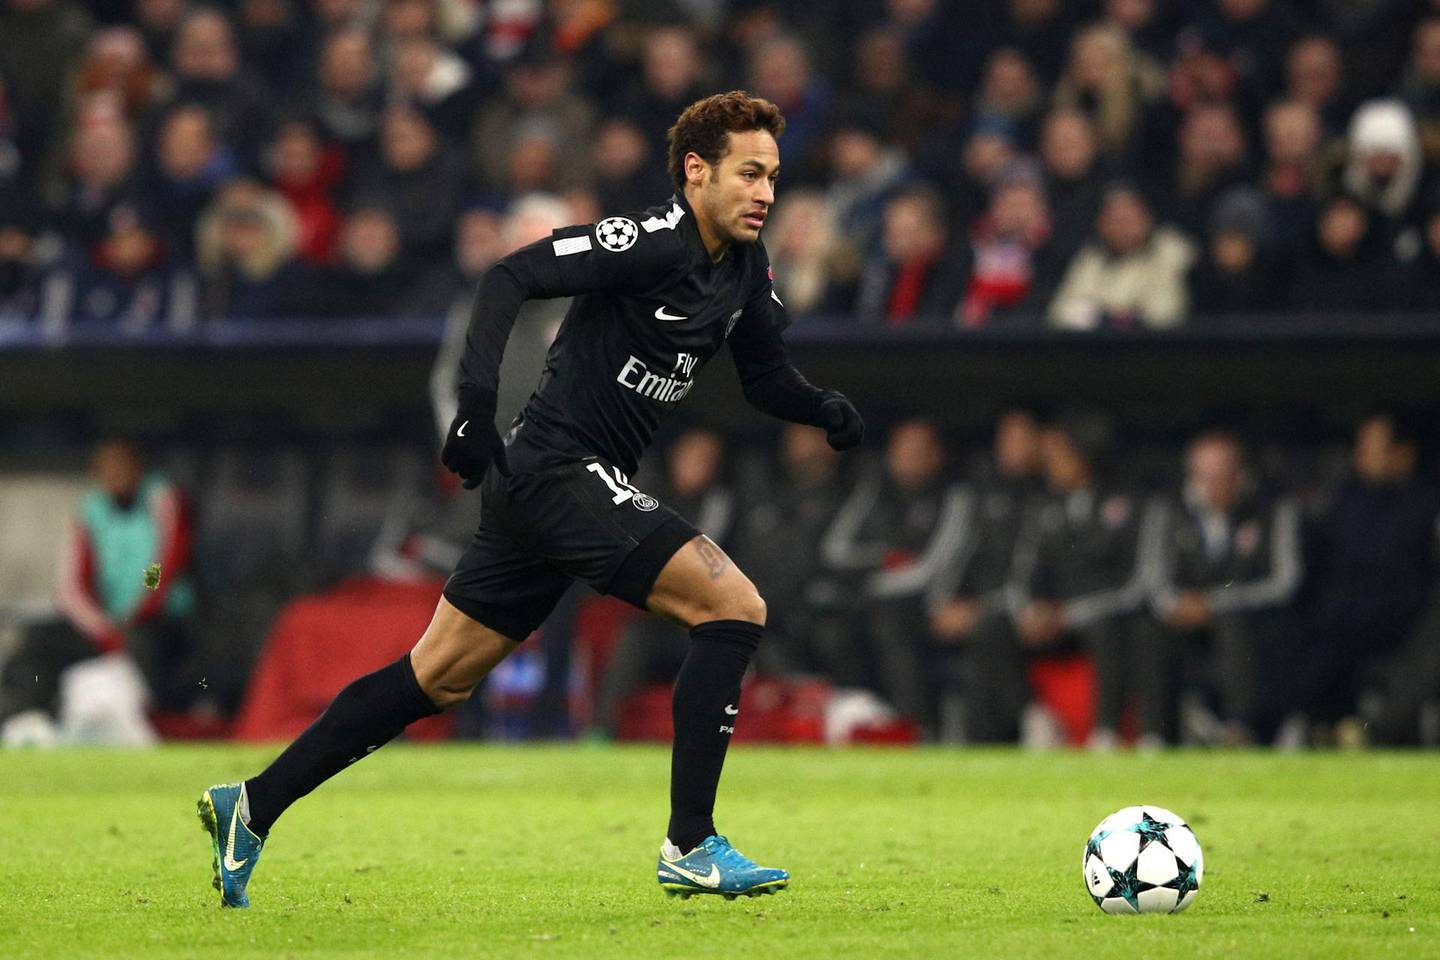 MUNICH, GERMANY - DECEMBER 05:  Neymar of PSG  during the UEFA Champions League group B match between Bayern Muenchen and Paris Saint-Germain at Allianz Arena on December 5, 2017 in Munich, Germany.  (Photo by Adam Pretty/Bongarts/Getty Images)